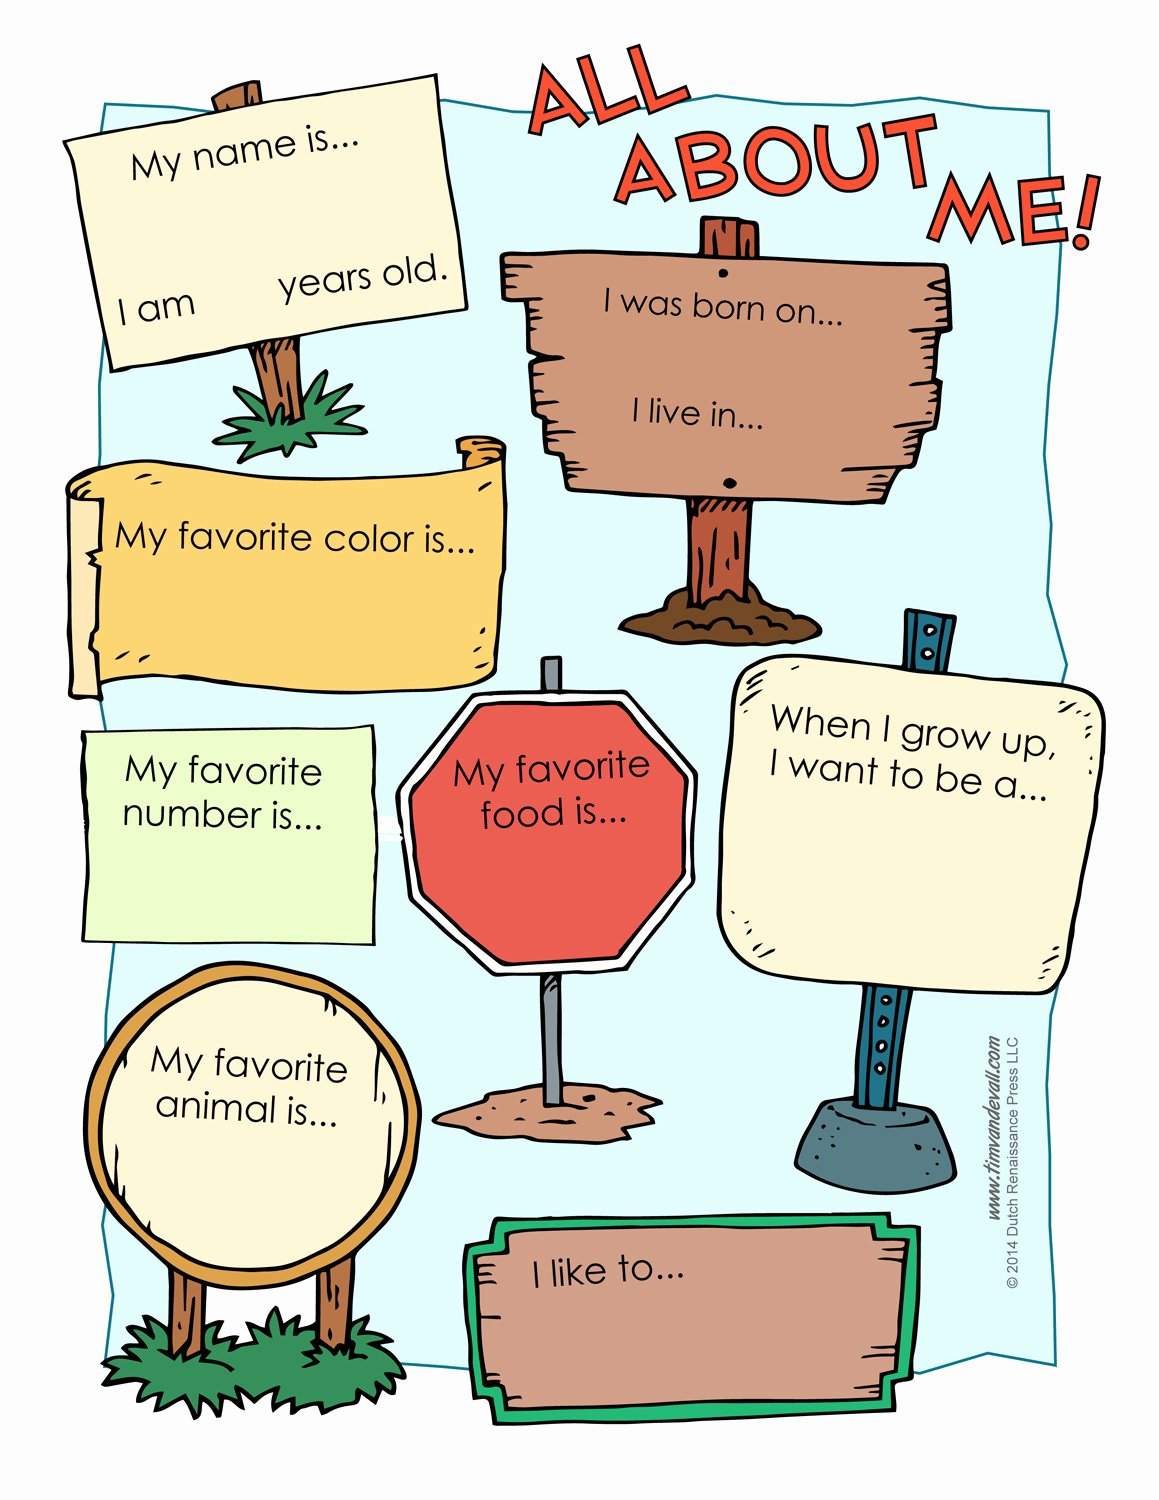 All About Me Printable Worksheet Luxury All About Me Worksheetstake the Pen